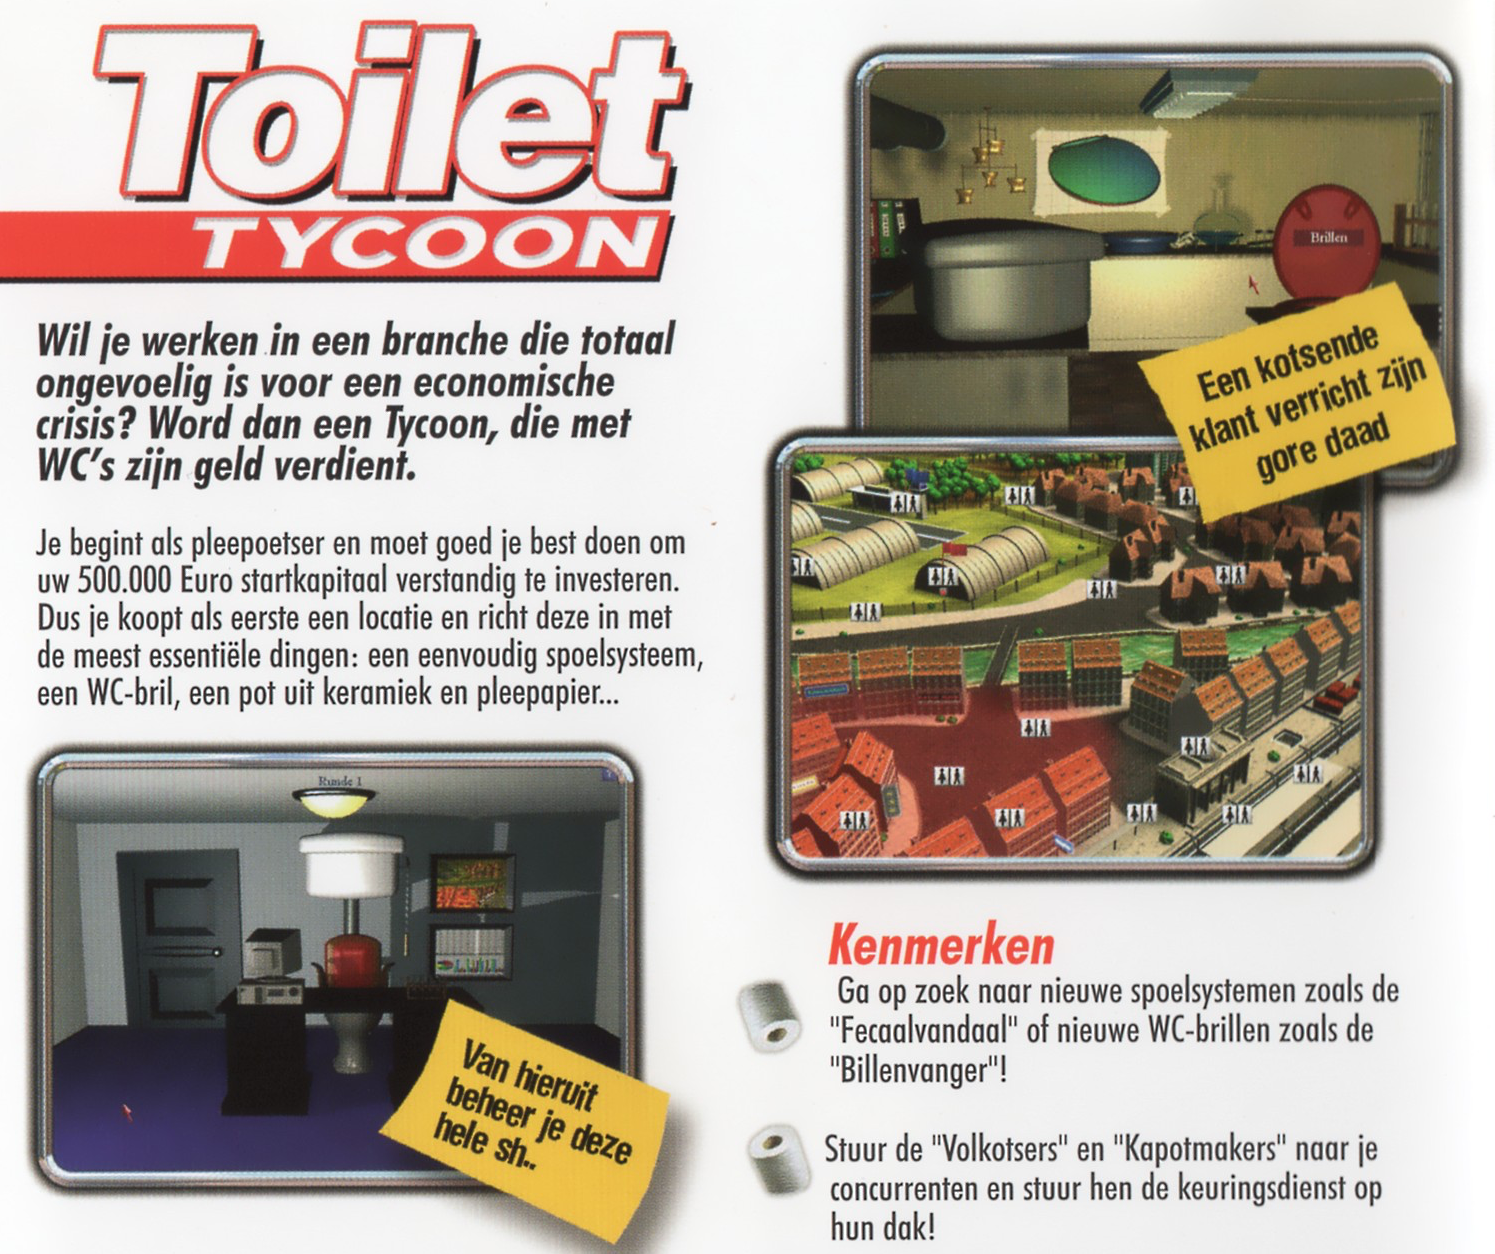 play 'toilet tycoon', the game where you literally put your economy